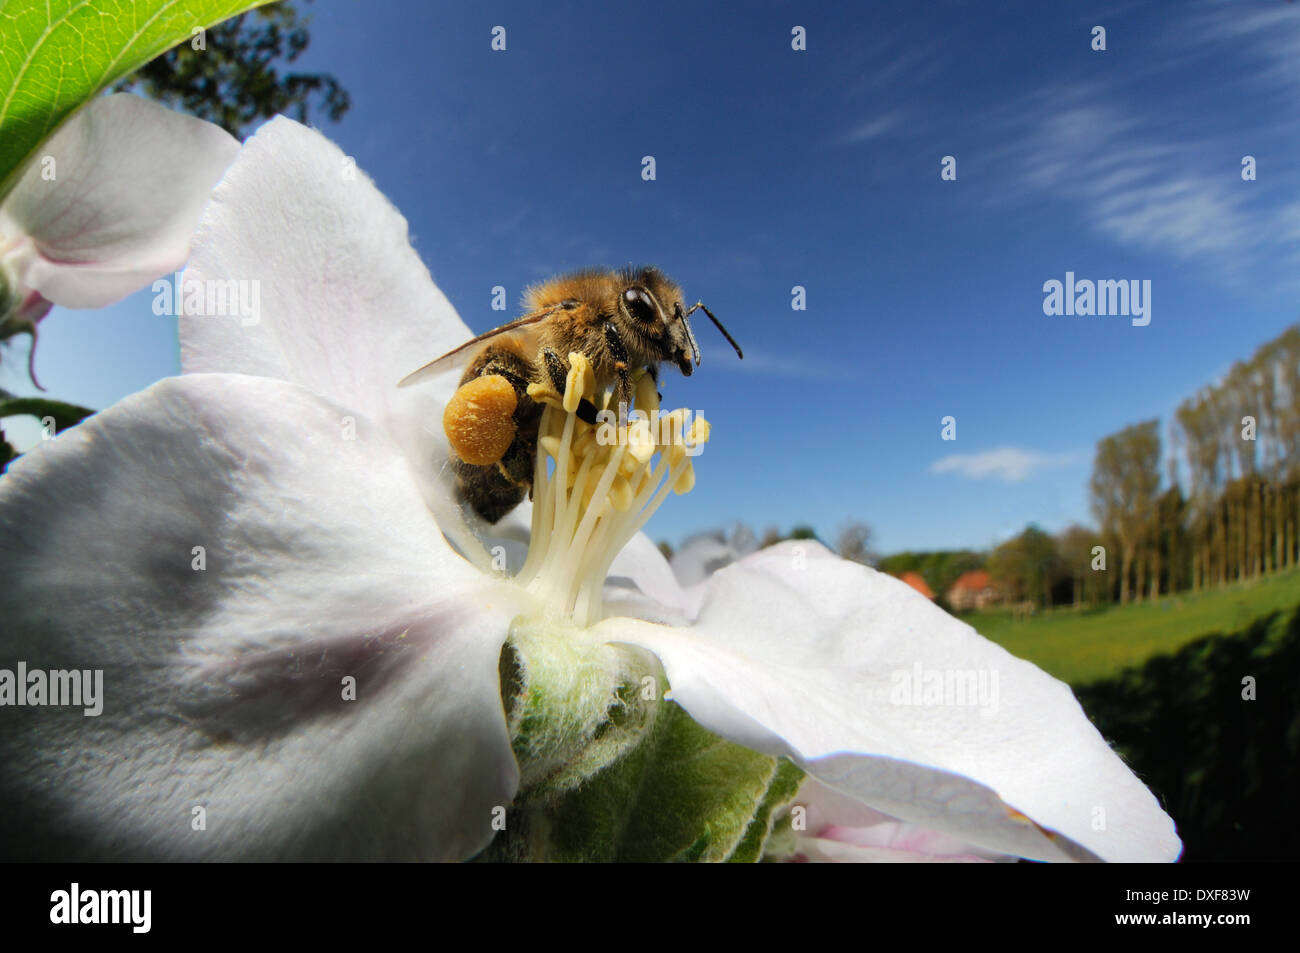 Honey bee (Apis mellifera) collecting pollen from the flower of an apple tree - Stock Image